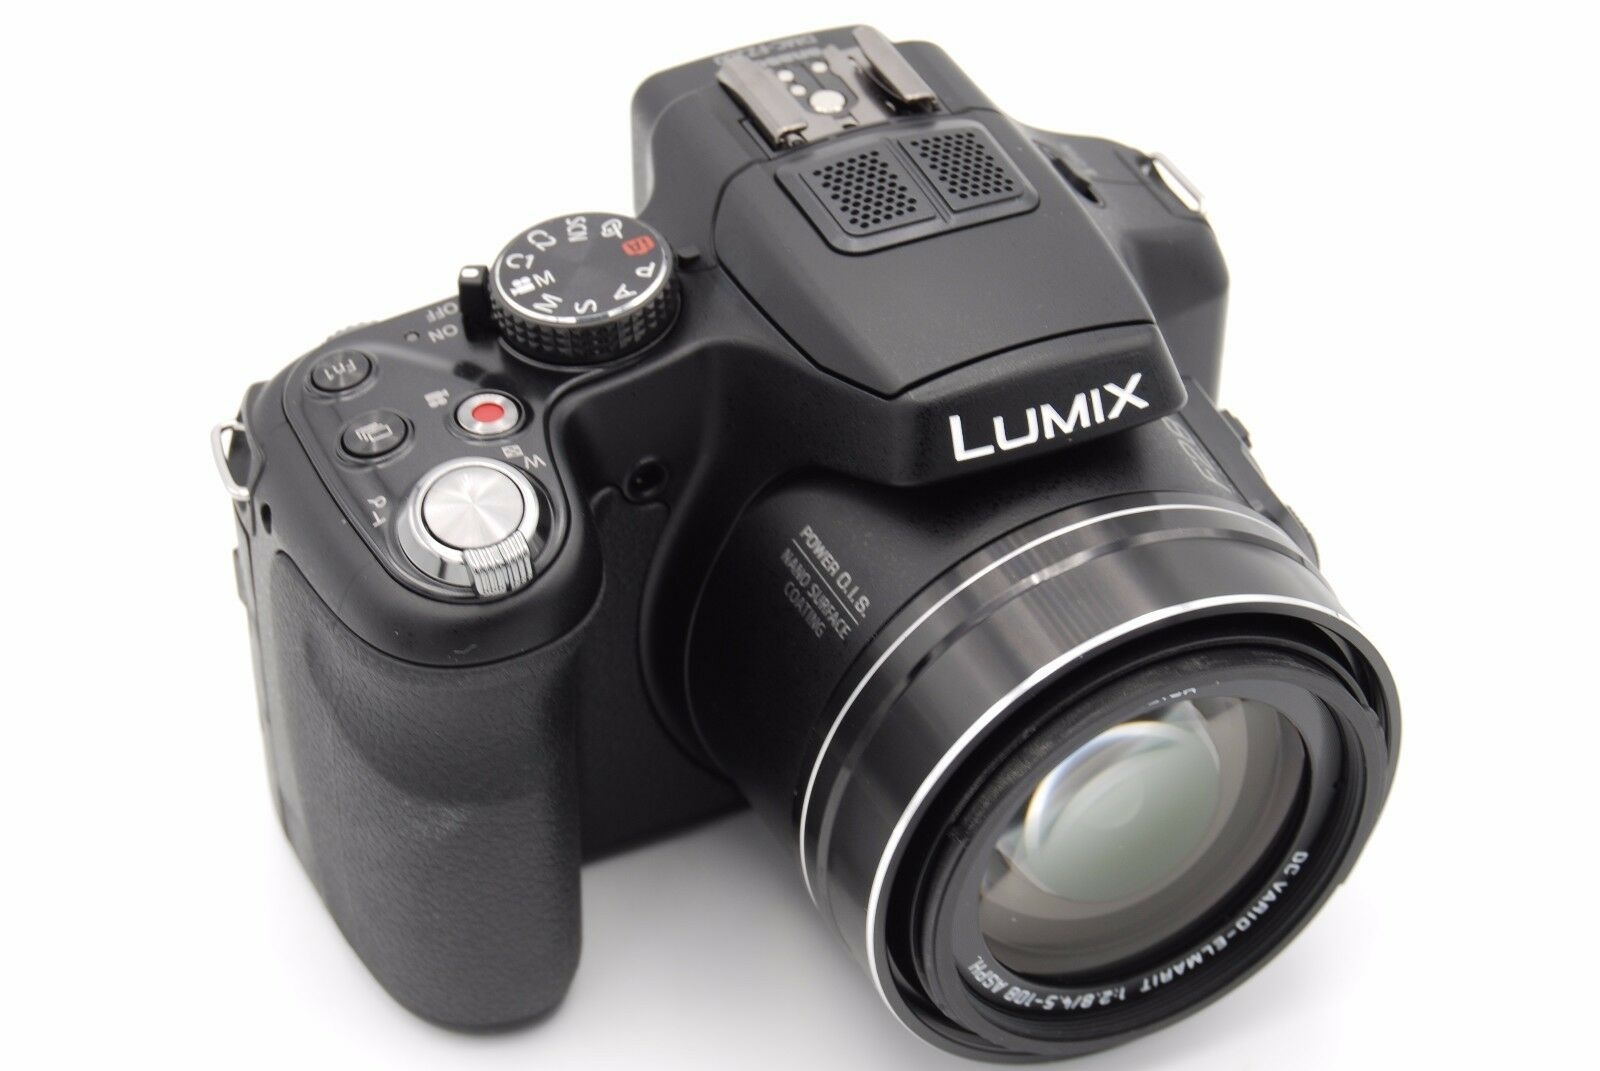 panasonic lumix dmc fz200 12 1mp 3 39 39 screen 24x zoom digital camera. Black Bedroom Furniture Sets. Home Design Ideas